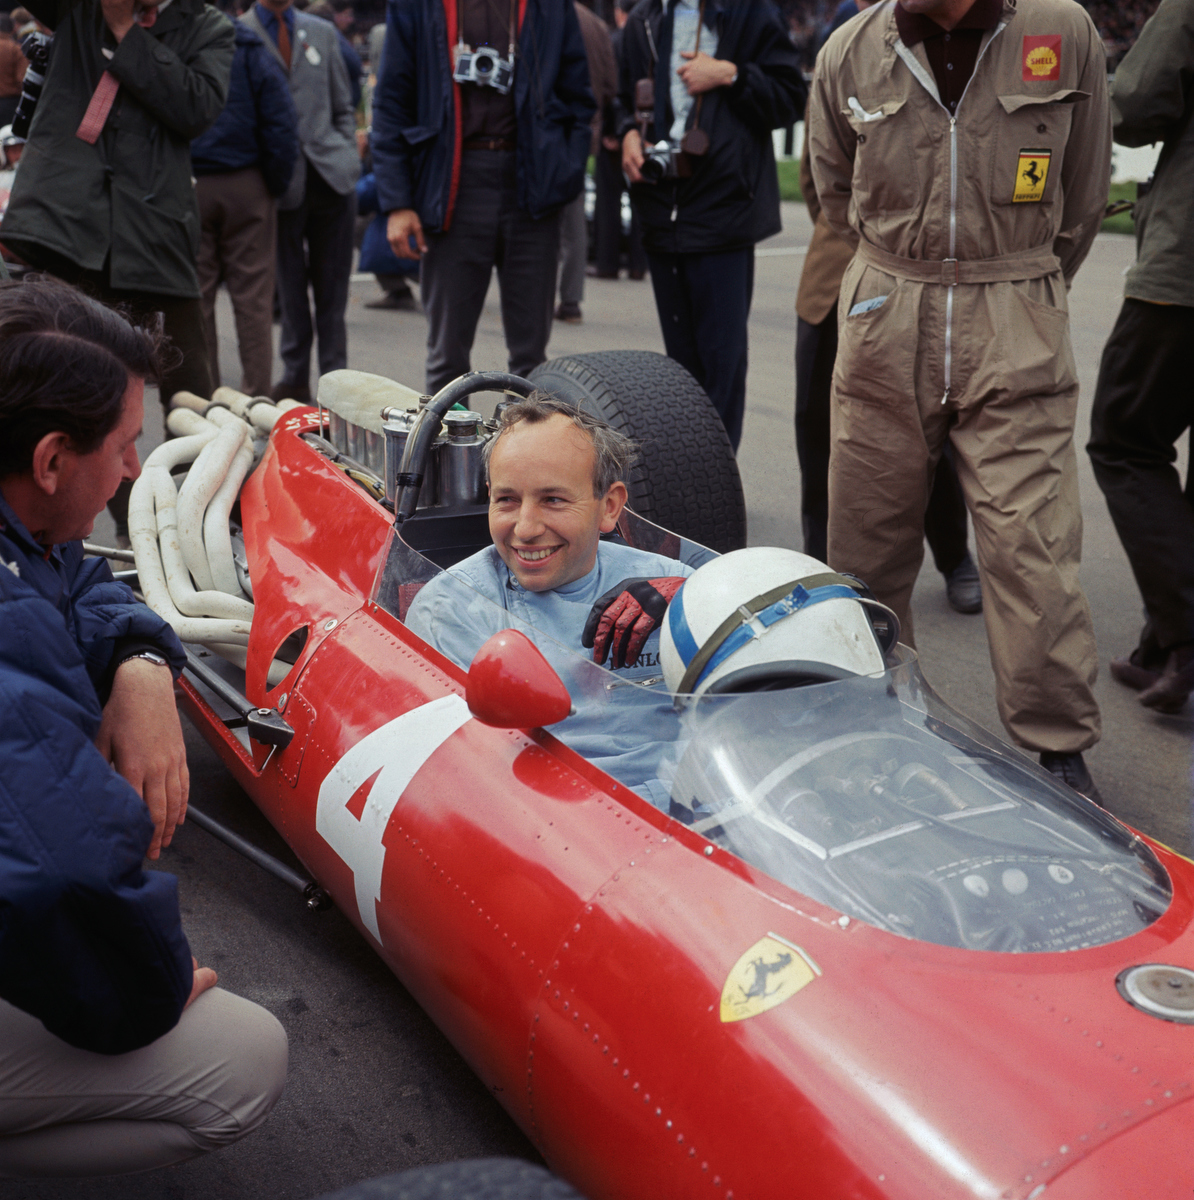 English Formula 1 racing driver John Surtees in a Ferrari at the Silverstone circuit, 1966. Pic: Central Press/Hulton Archive/Getty Images